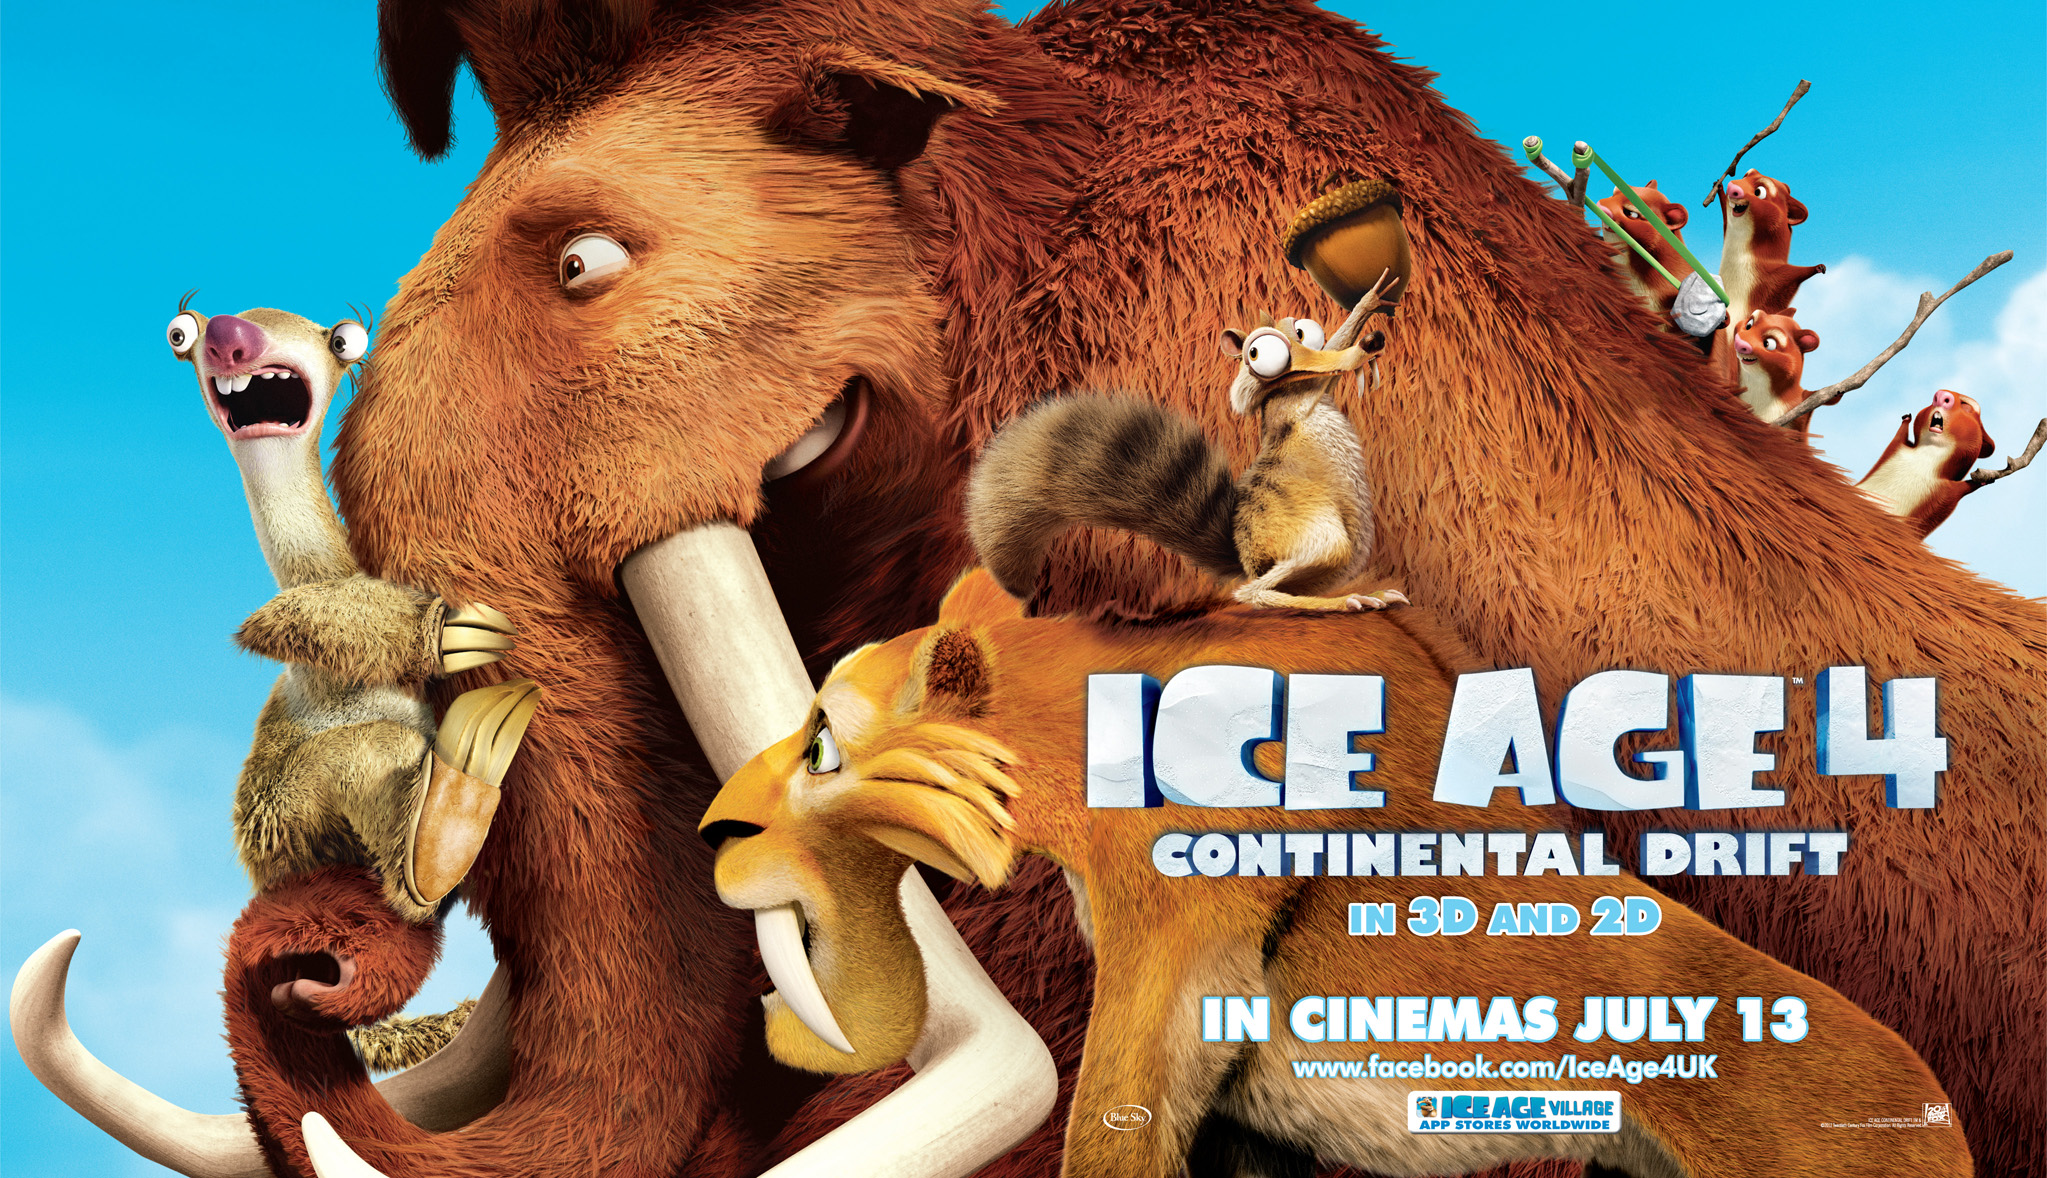 Ice Age: Continental Drift Backgrounds, Compatible - PC, Mobile, Gadgets| 2047x1178 px